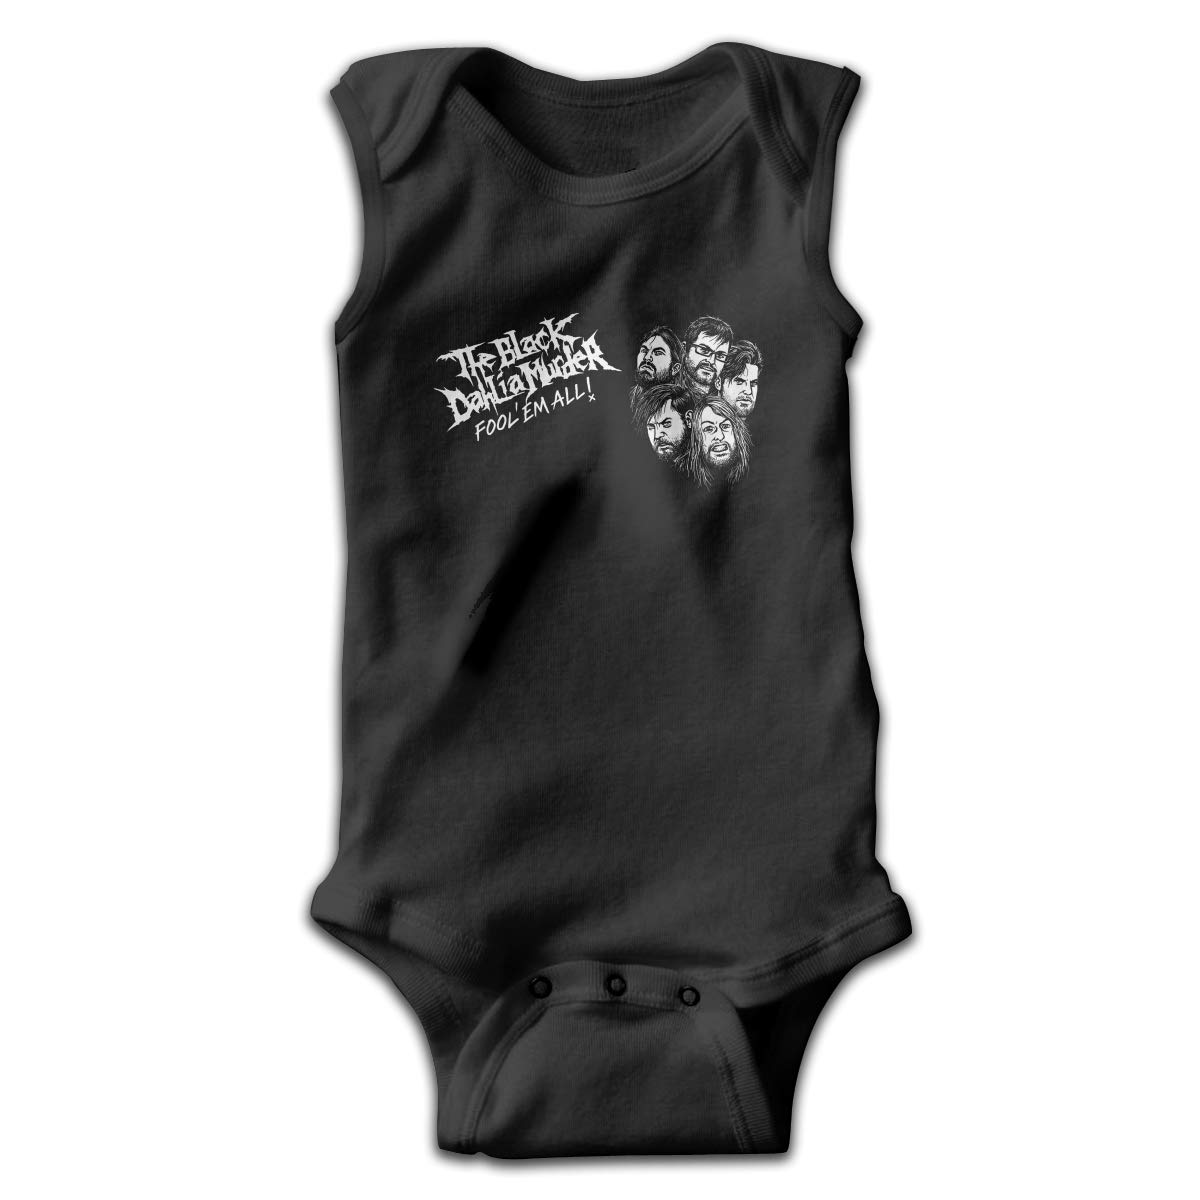 The Black Dahlia Murder Music Band Sleeveless Baby Bodysuit Daily Baby Toddlers Crawling Clothes Gift